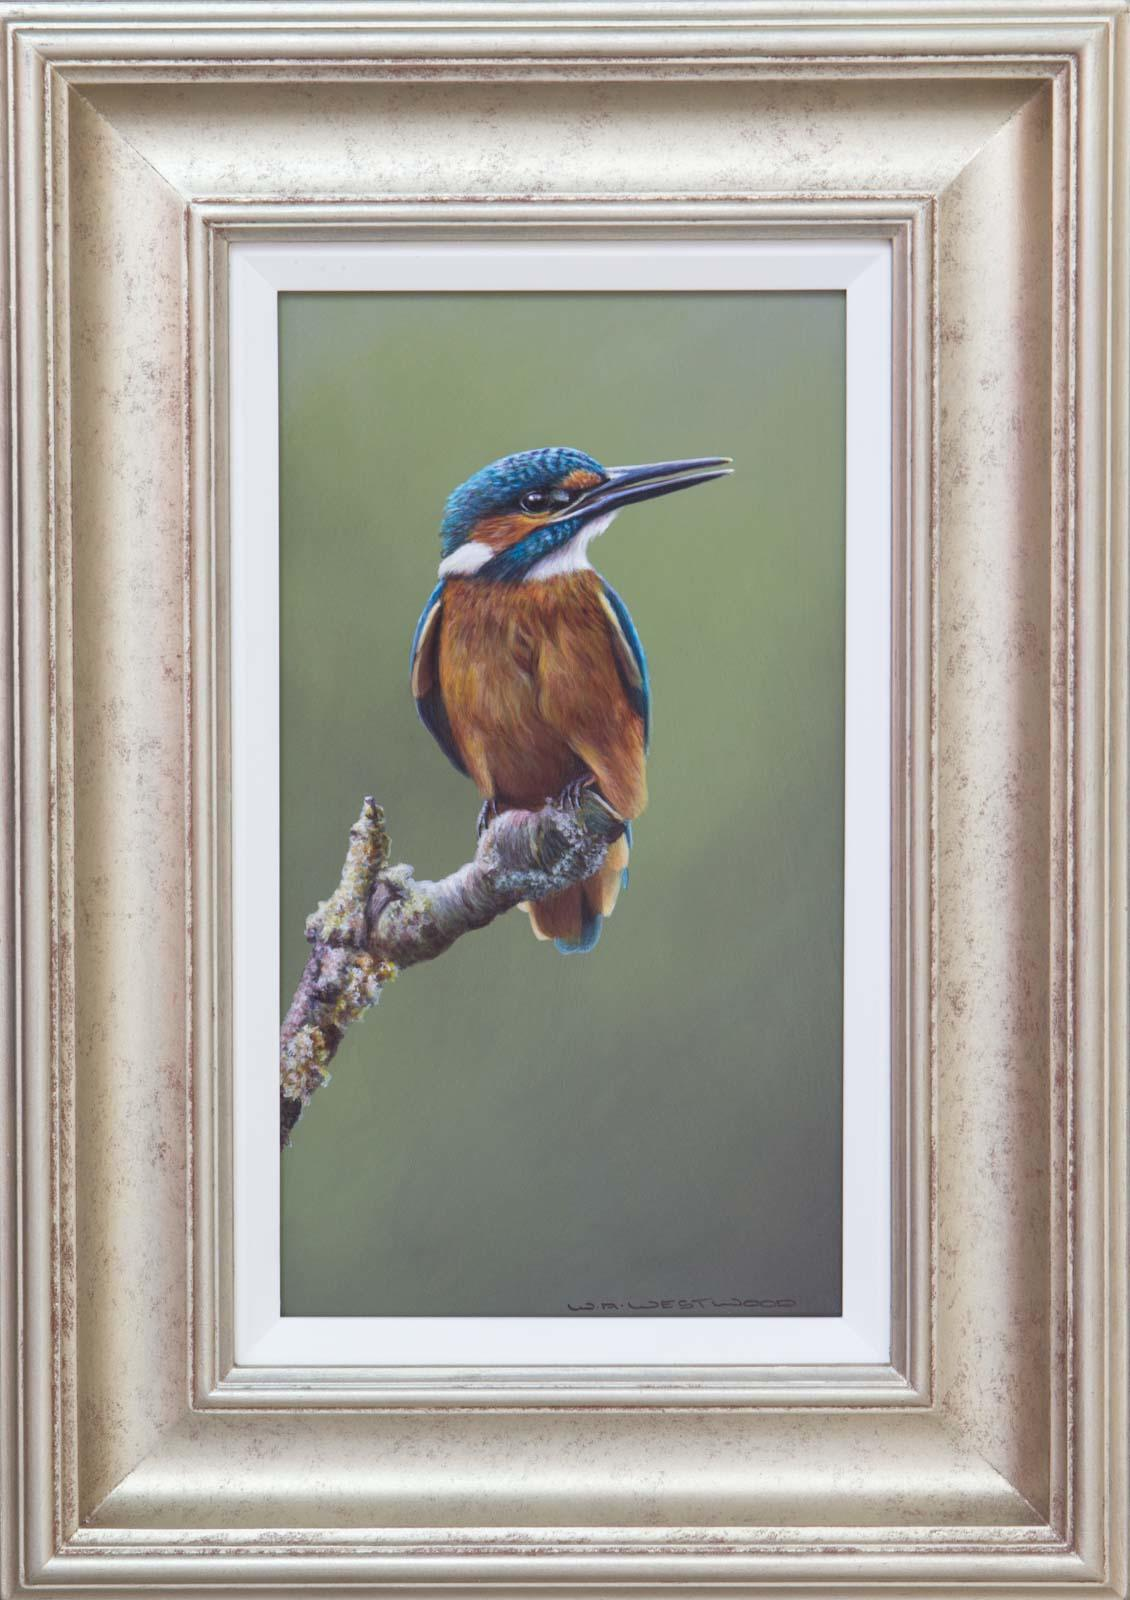 Kingfisher's Perch, Wayne Westwood